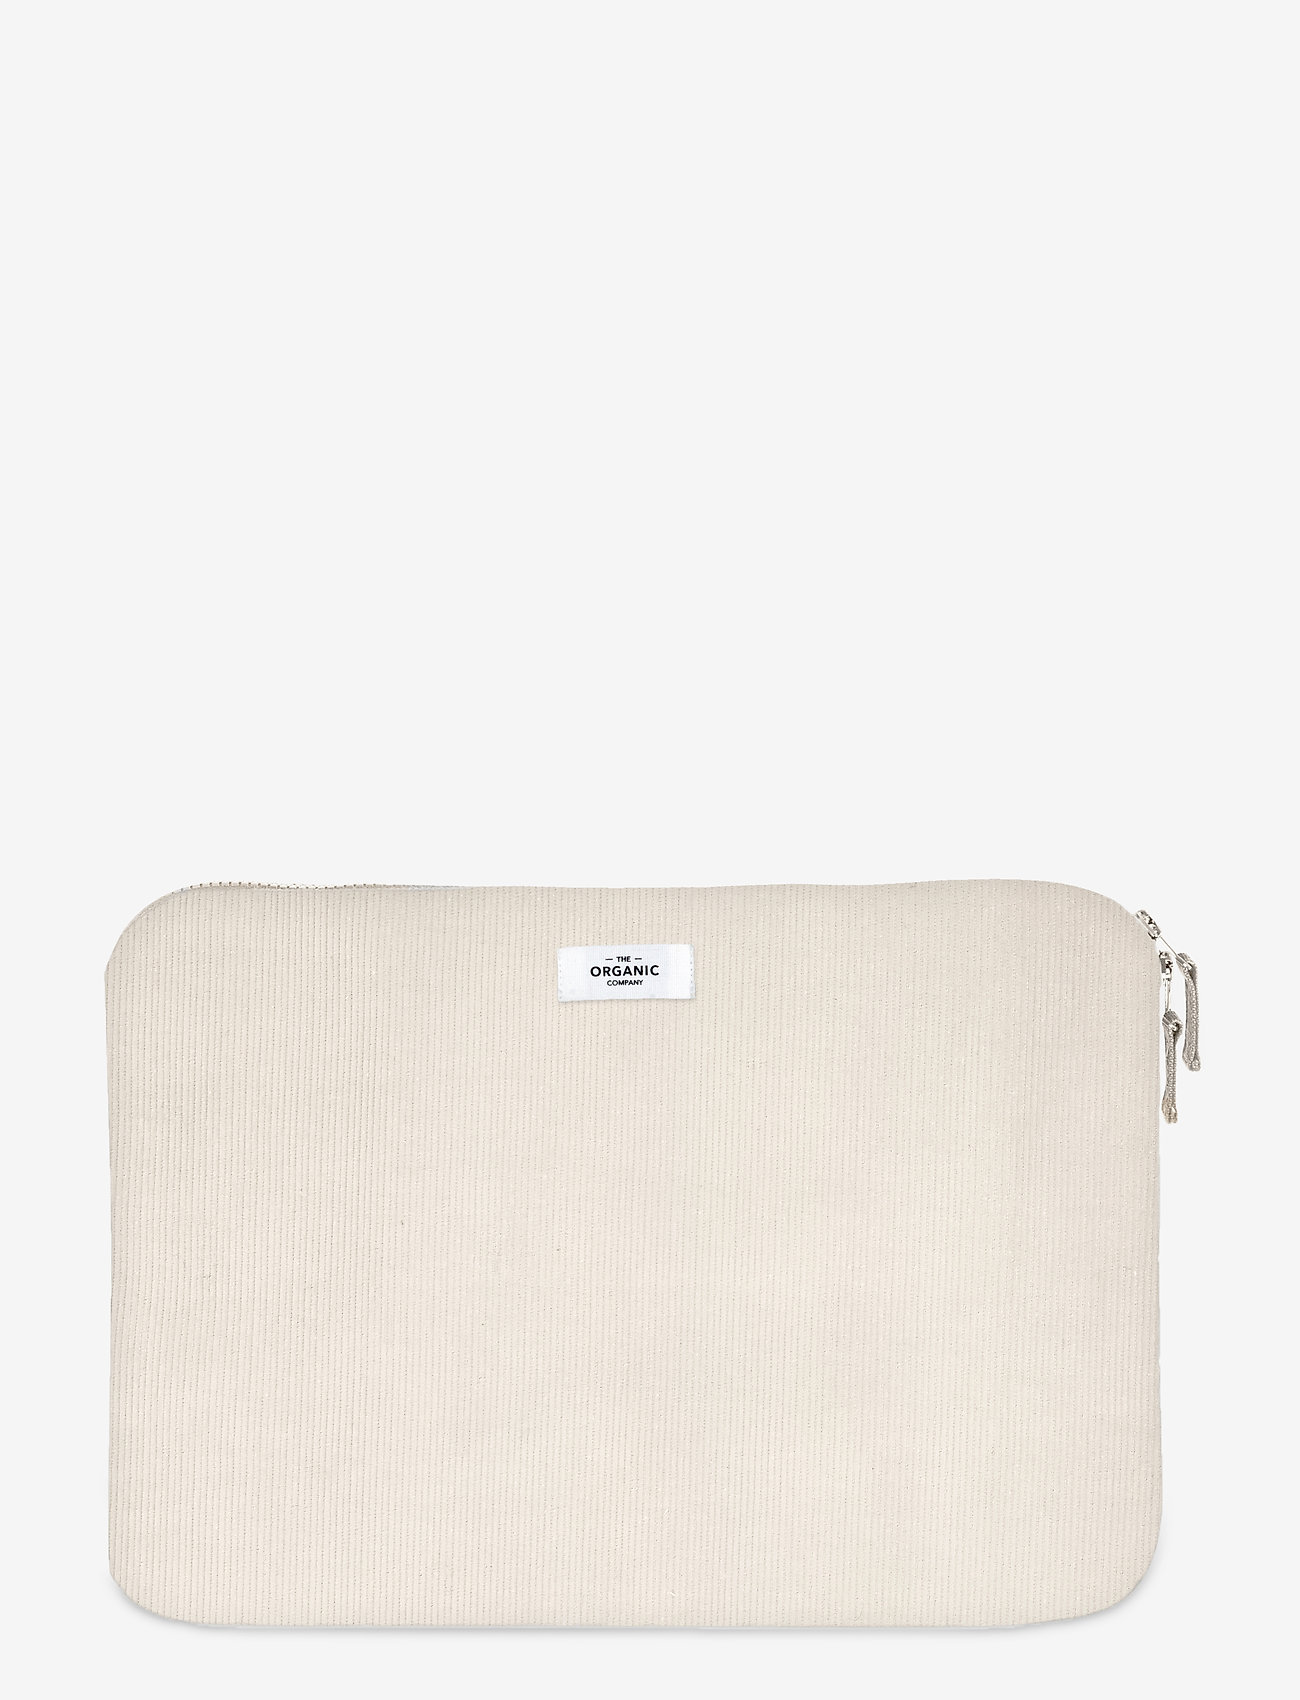 "The Organic Company - Laptop Sleeve 15"" - tassen - 202 stone - 0"